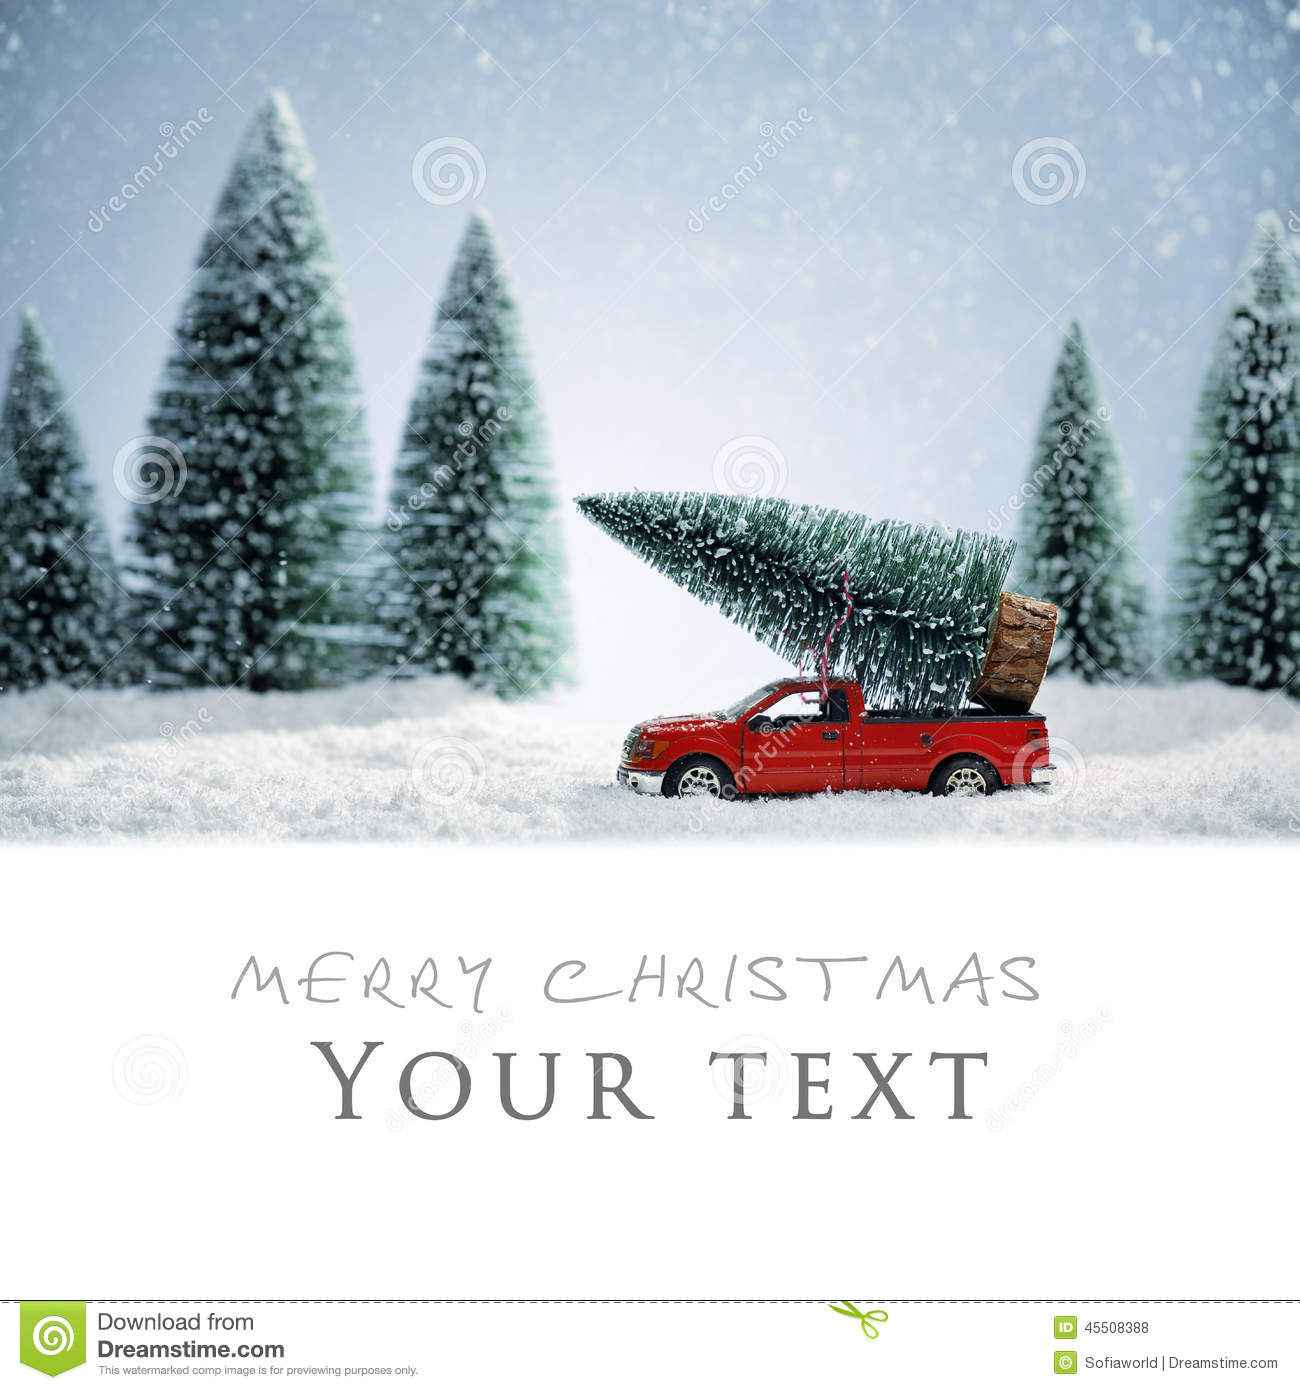 Christmas Card Stock Photo. Image Of Background, Snow